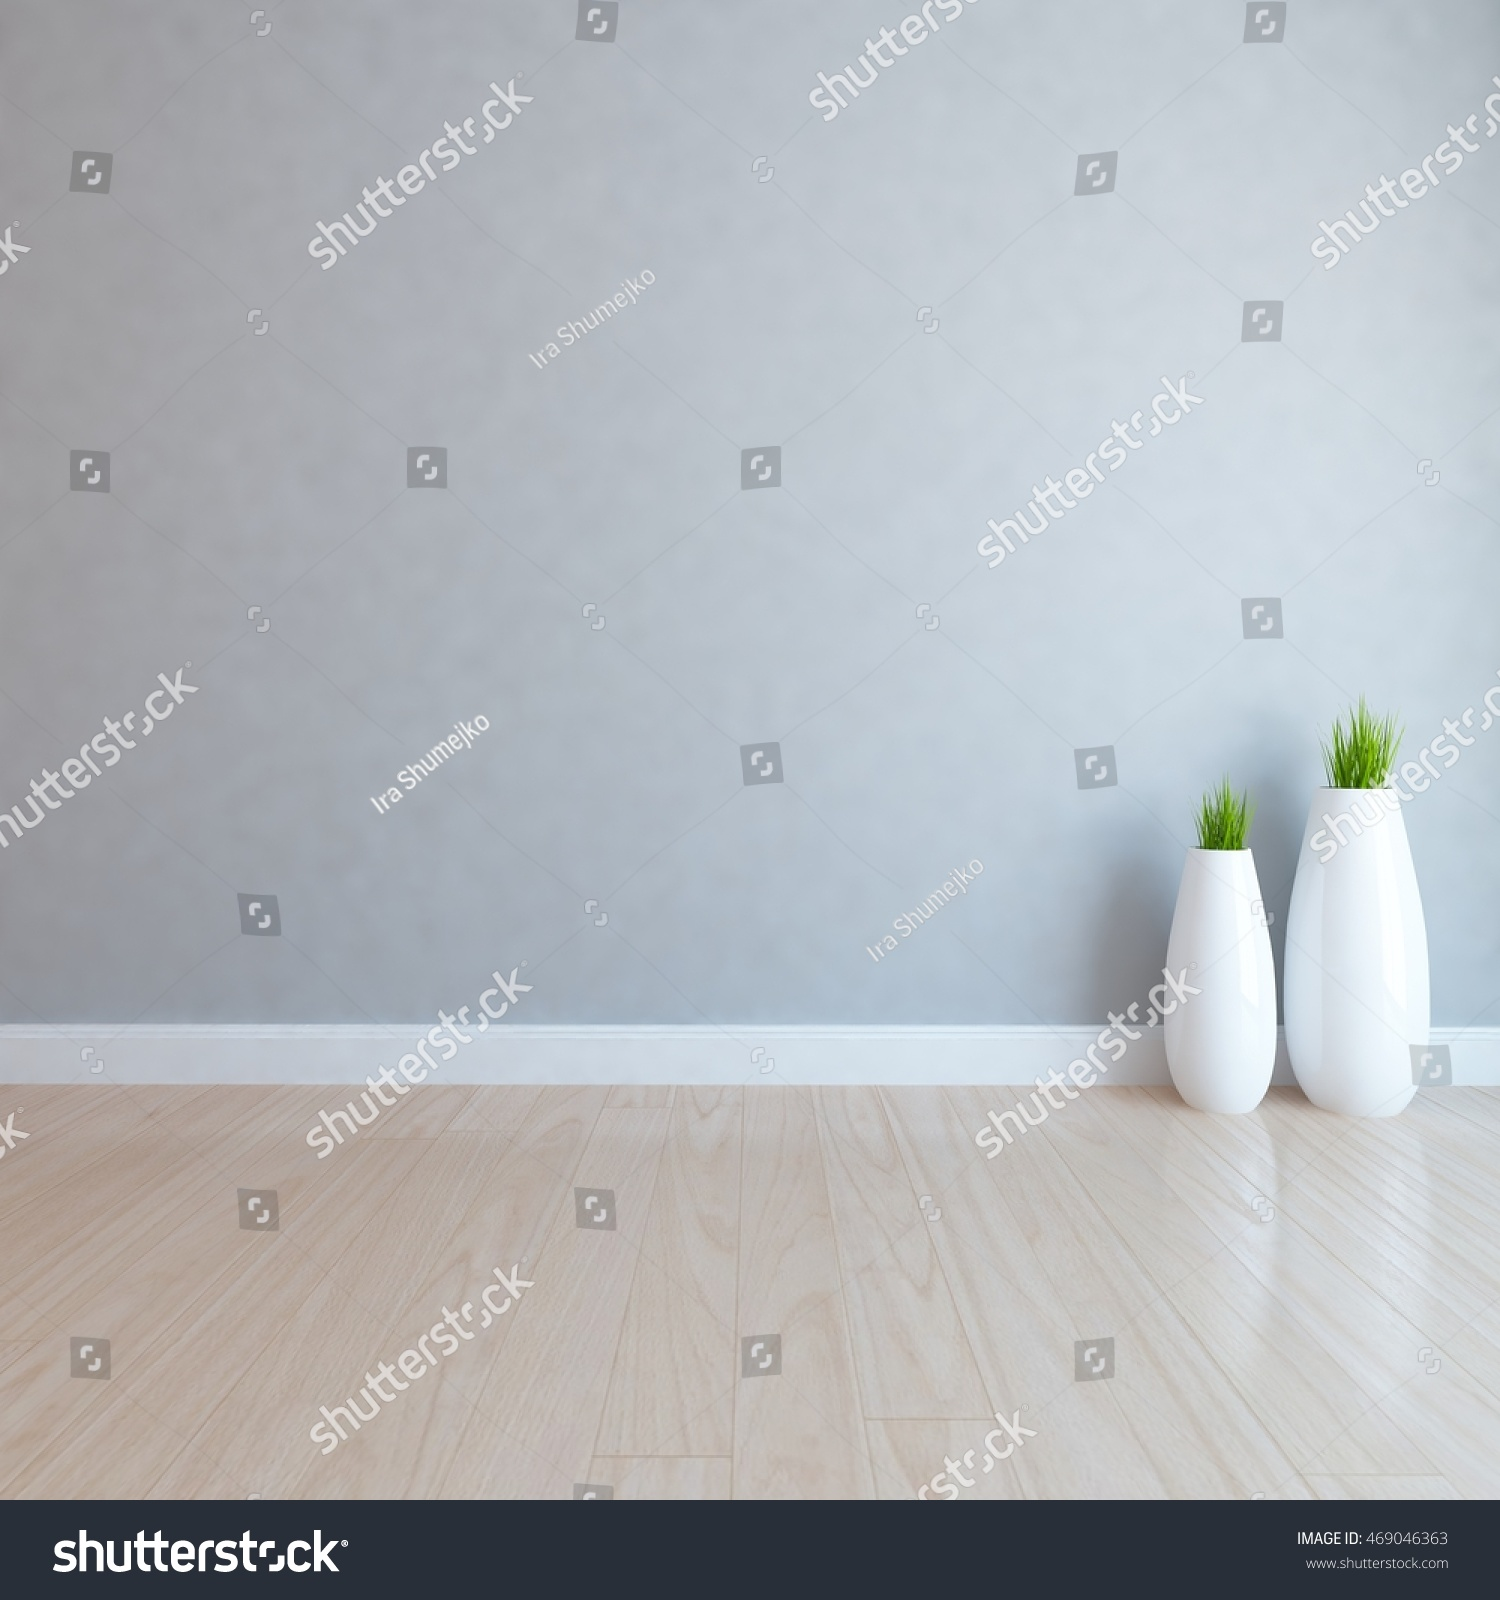 gray empty interior with vases 3d illustration